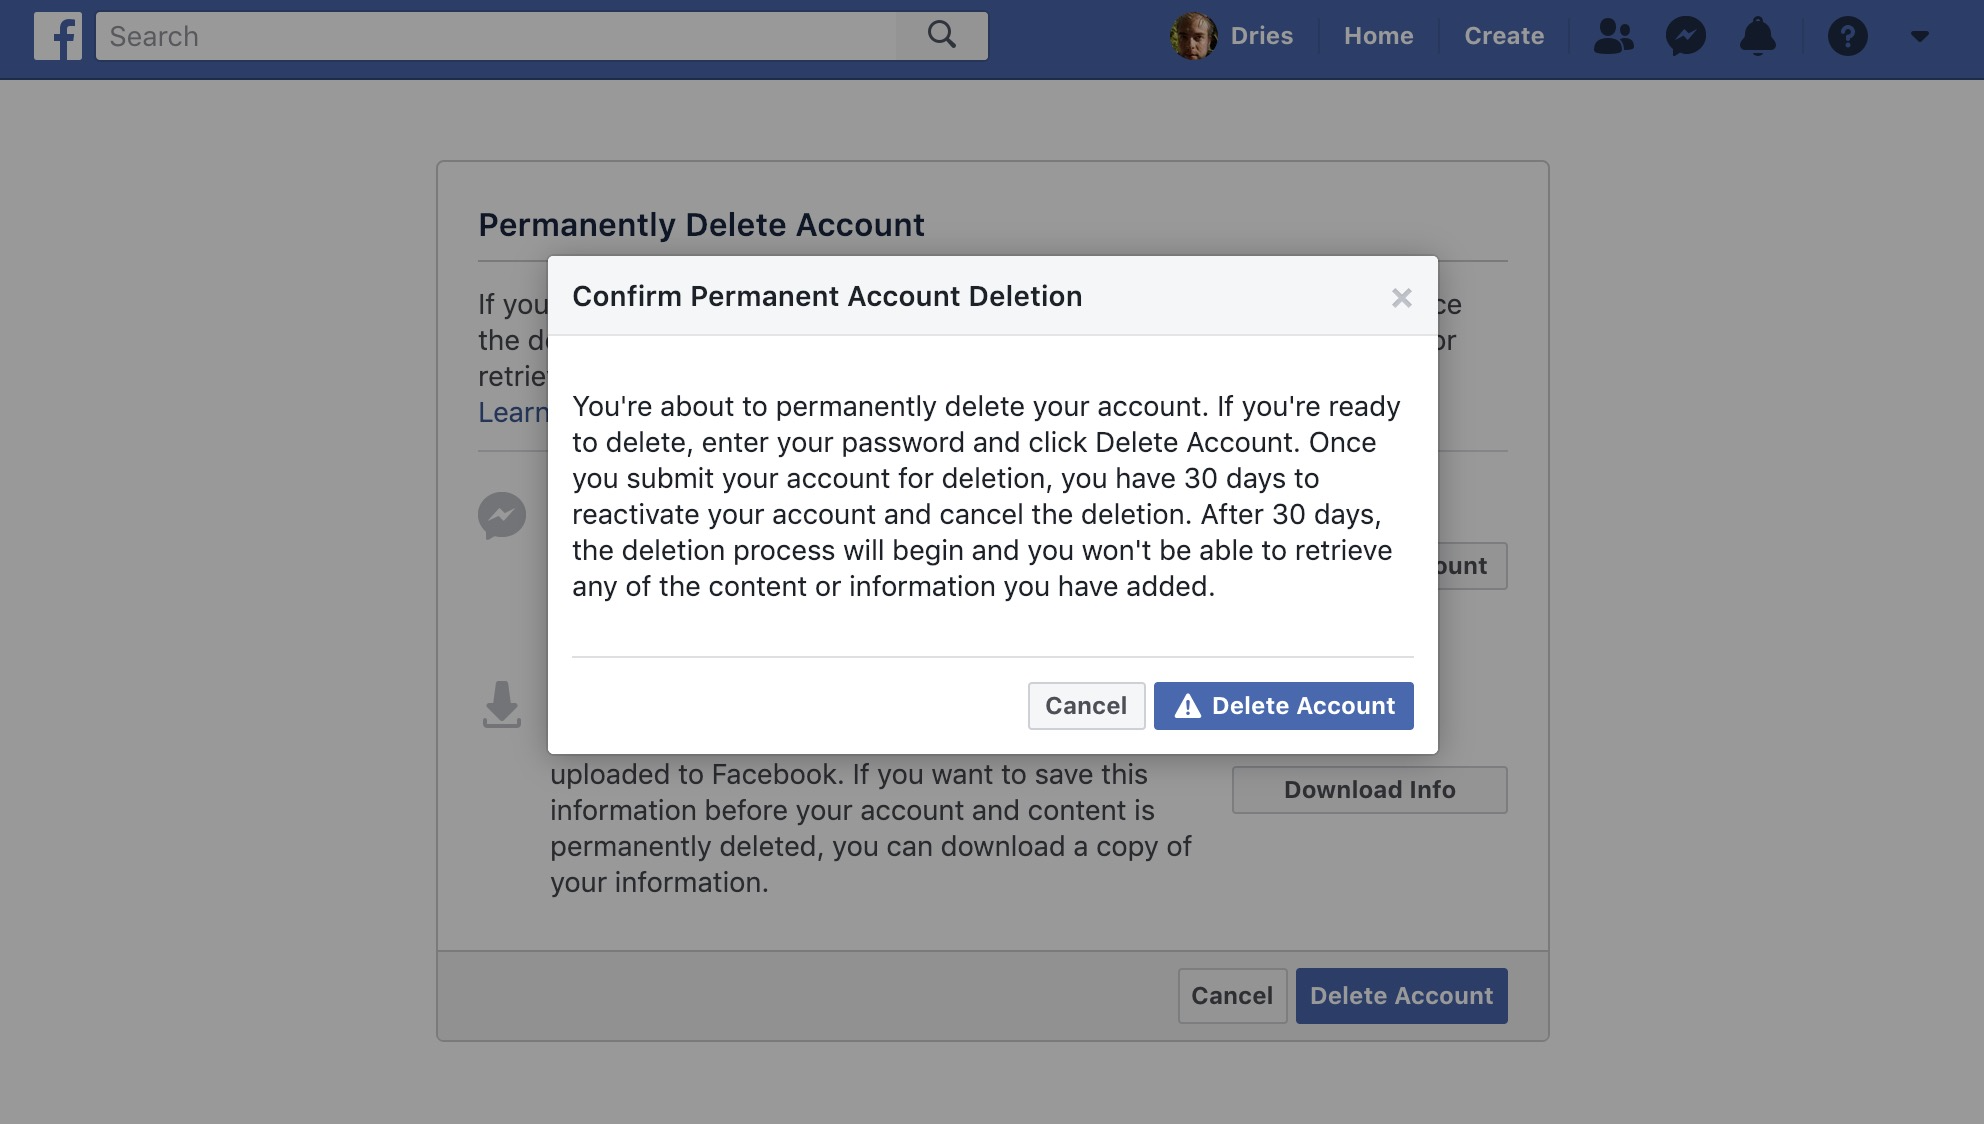 An image of Facebook's account deletion confirmation screen